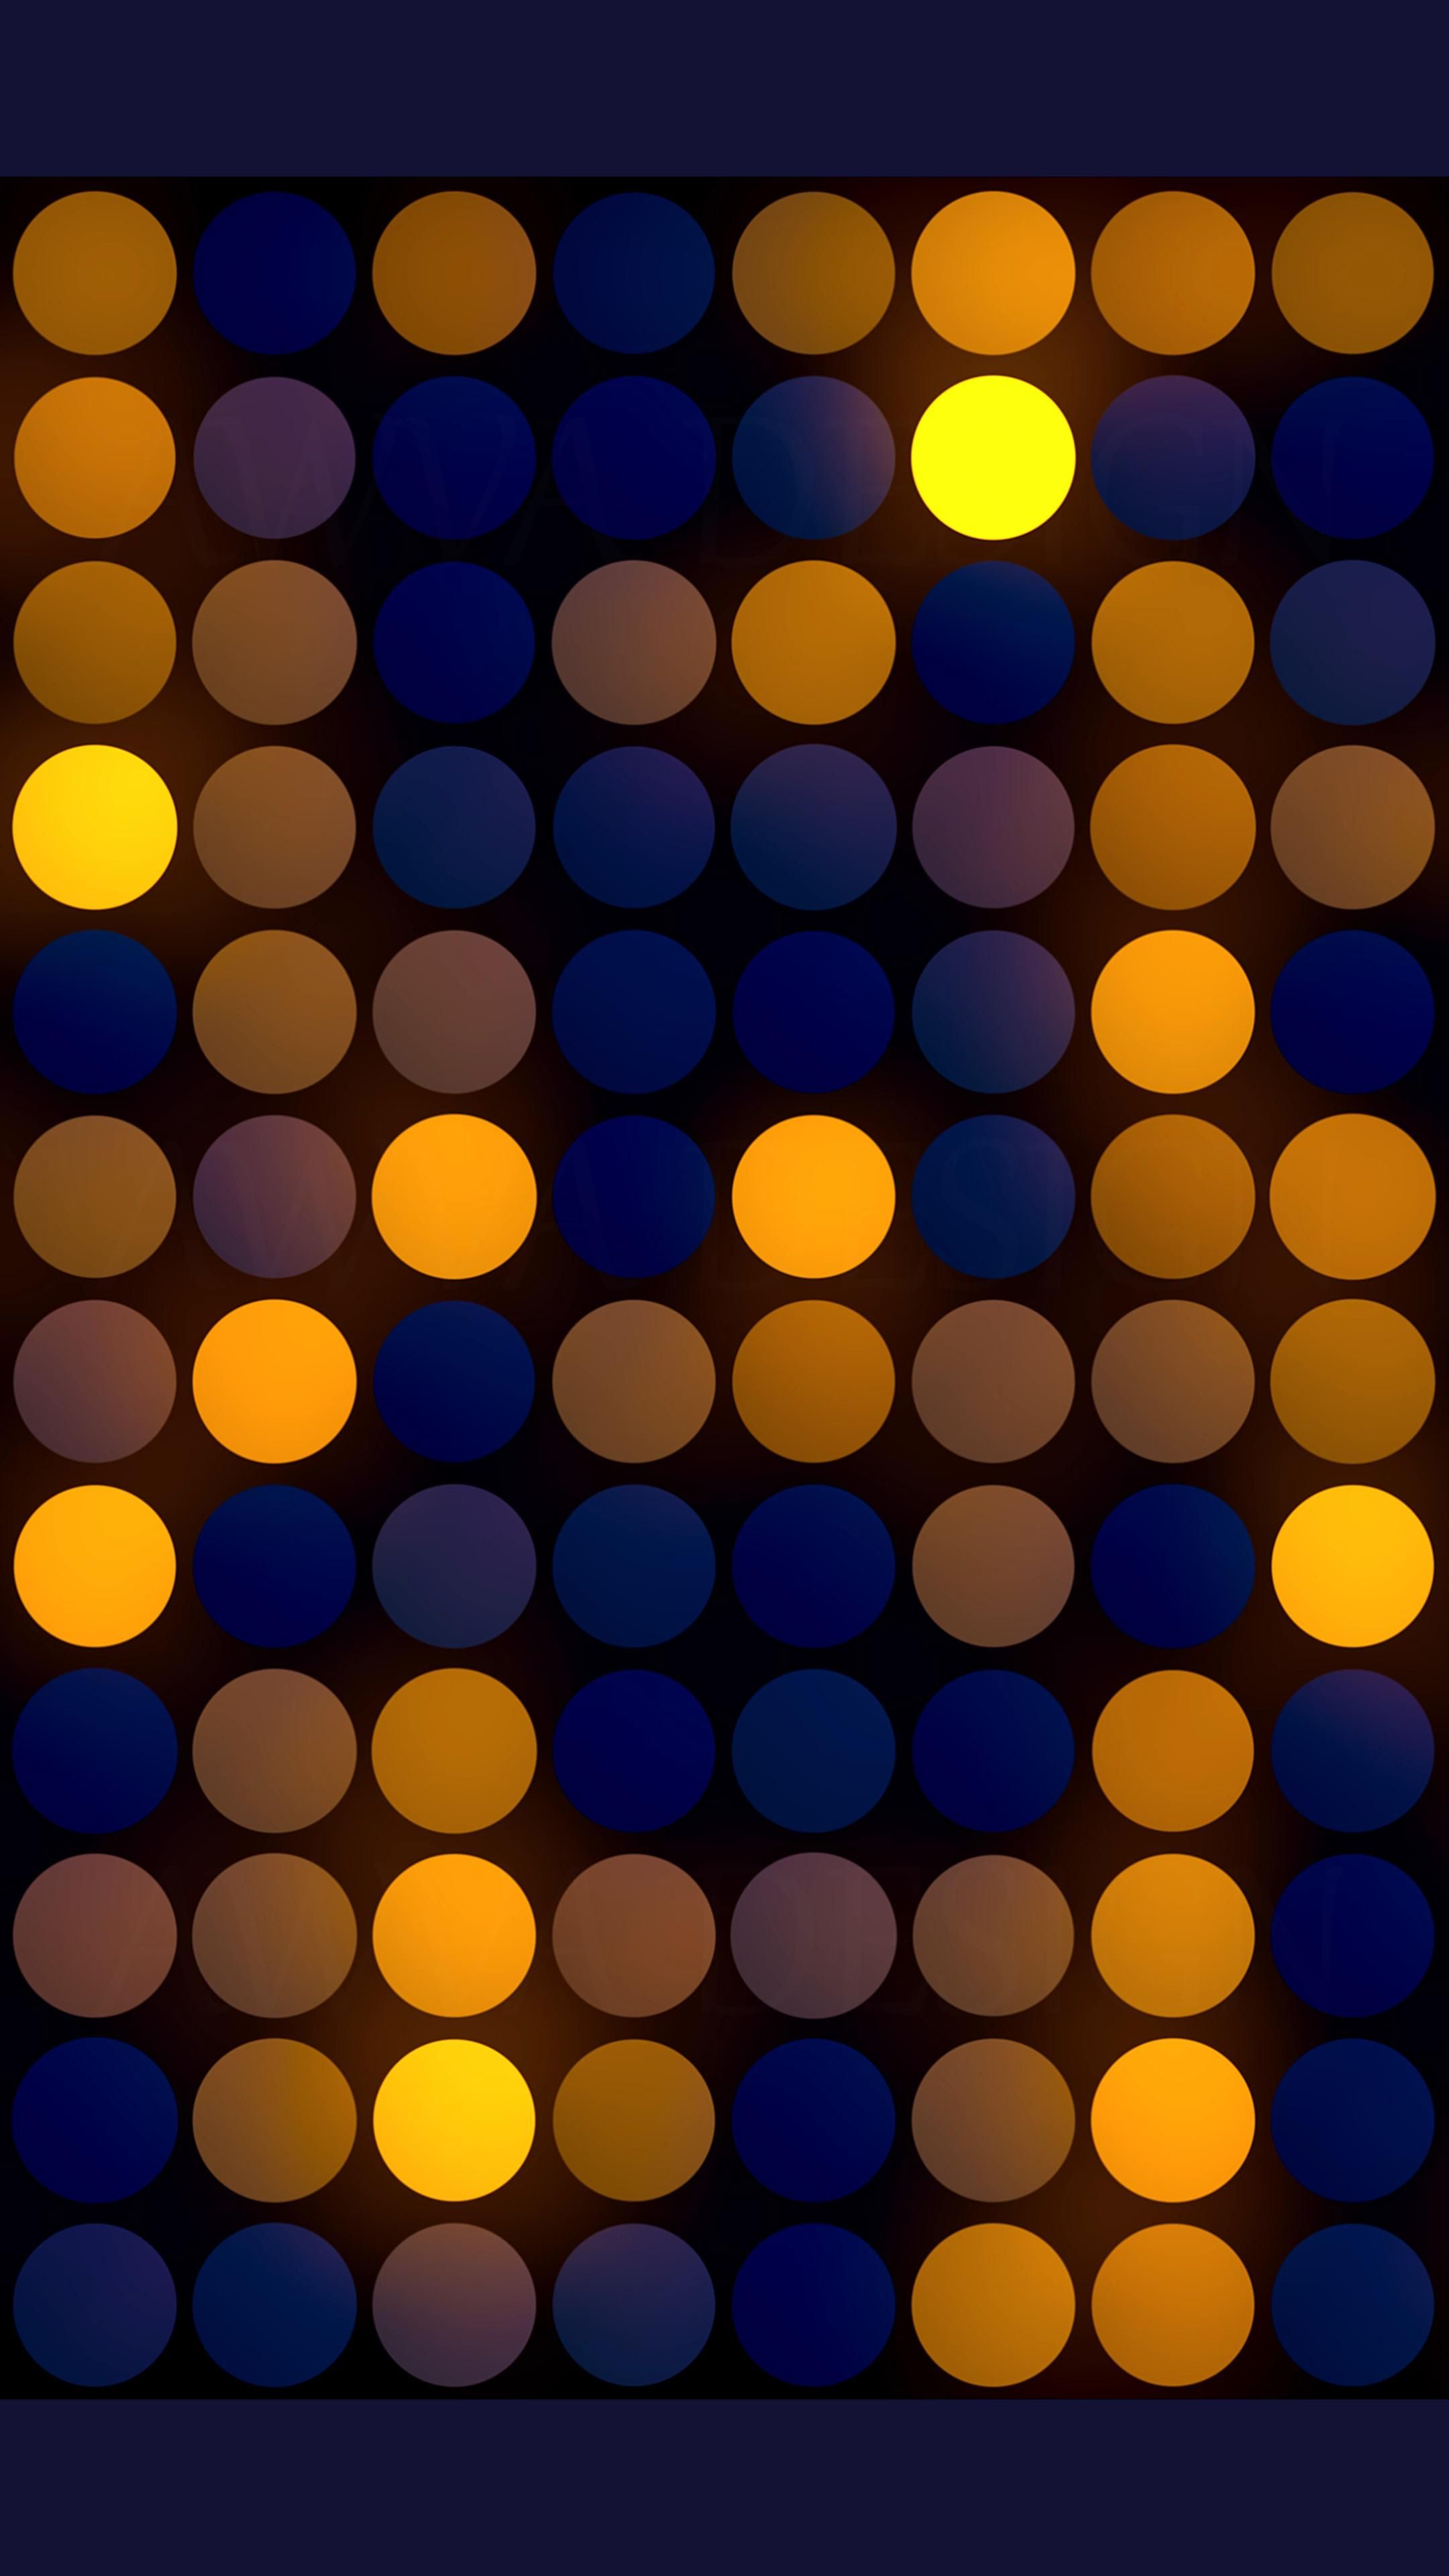 Abstract Christmas background with colorful bright circles.